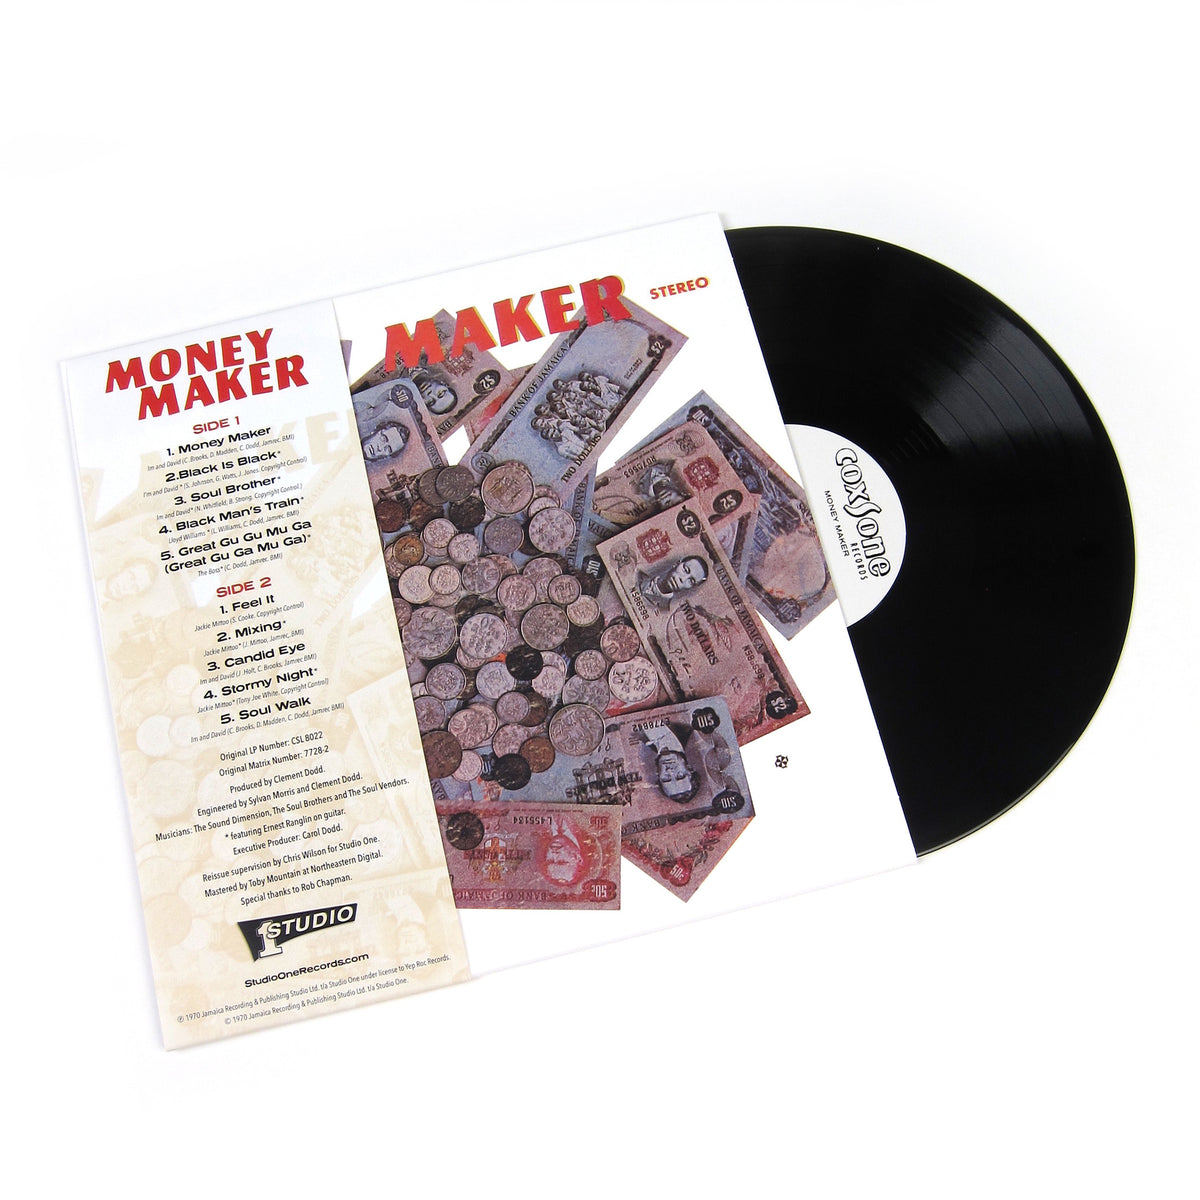 Studio One: Money Maker Collection Vinyl LP